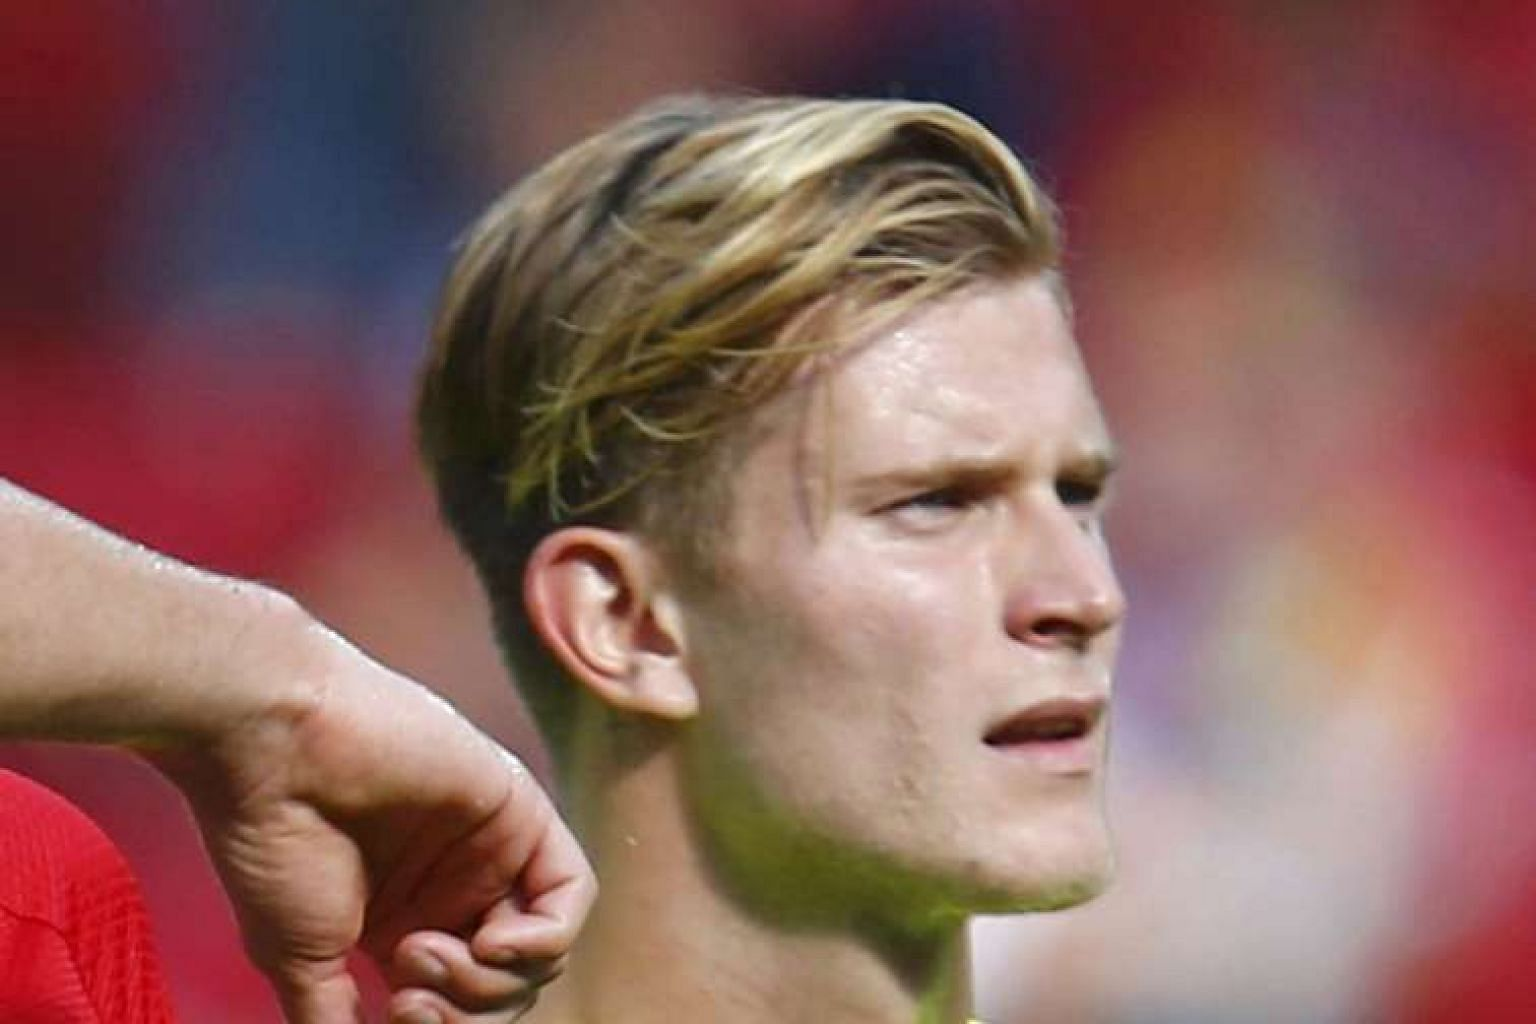 Goalkeeper Loris Karius, who arrives from Mainz, is aiming to dislodge Simon Mignolet.